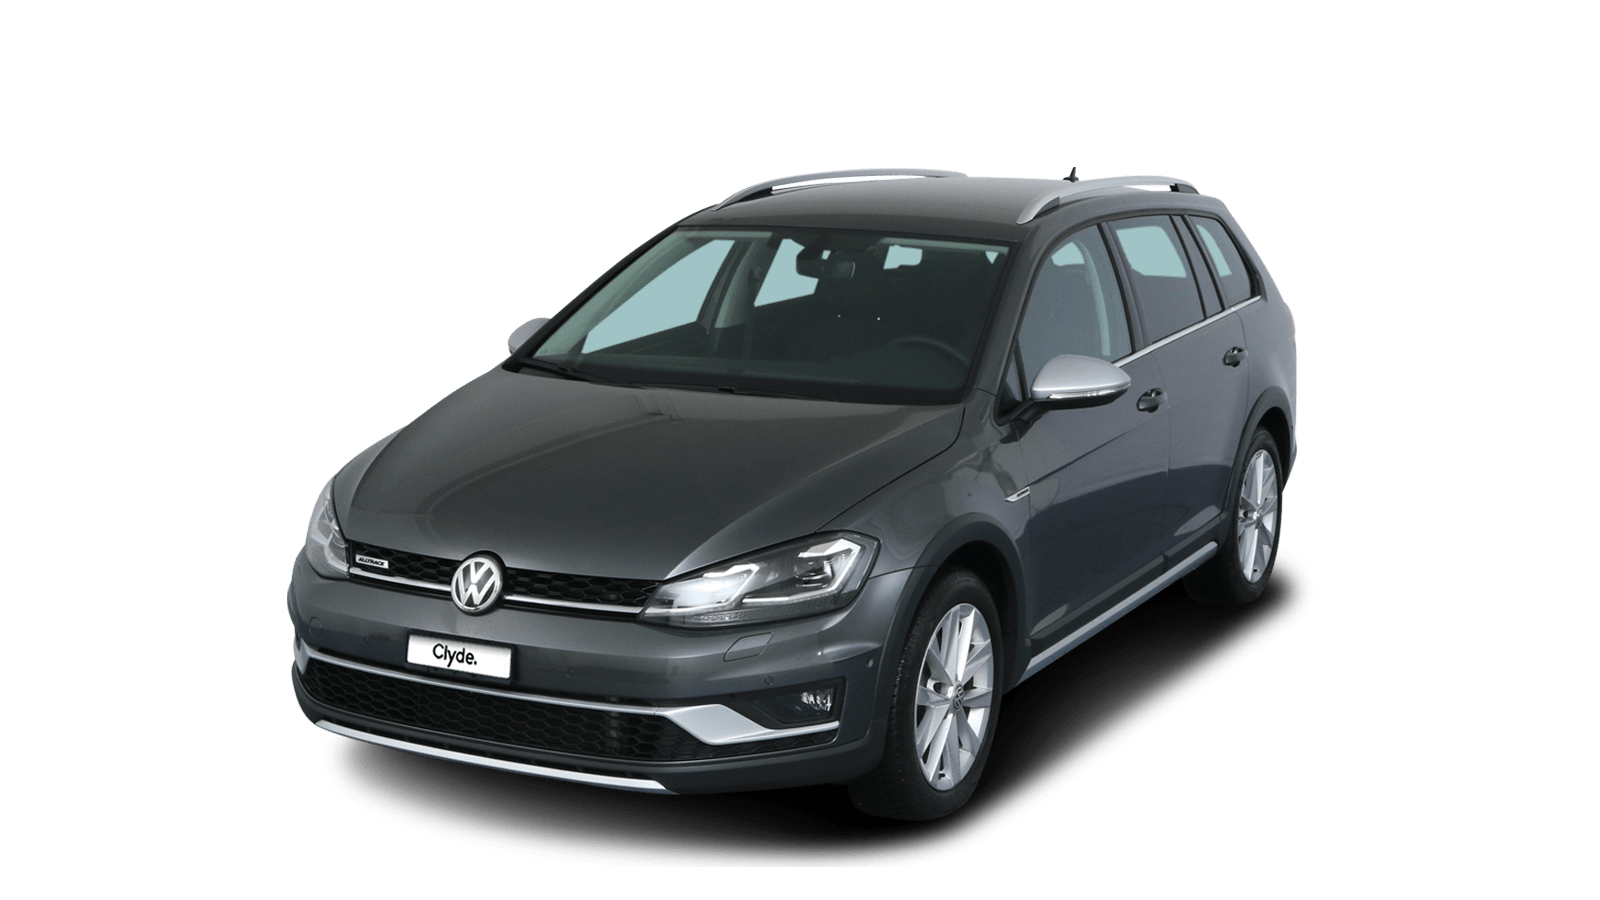 VW Golf Variant Alltrack Grey front - Clyde car subscription